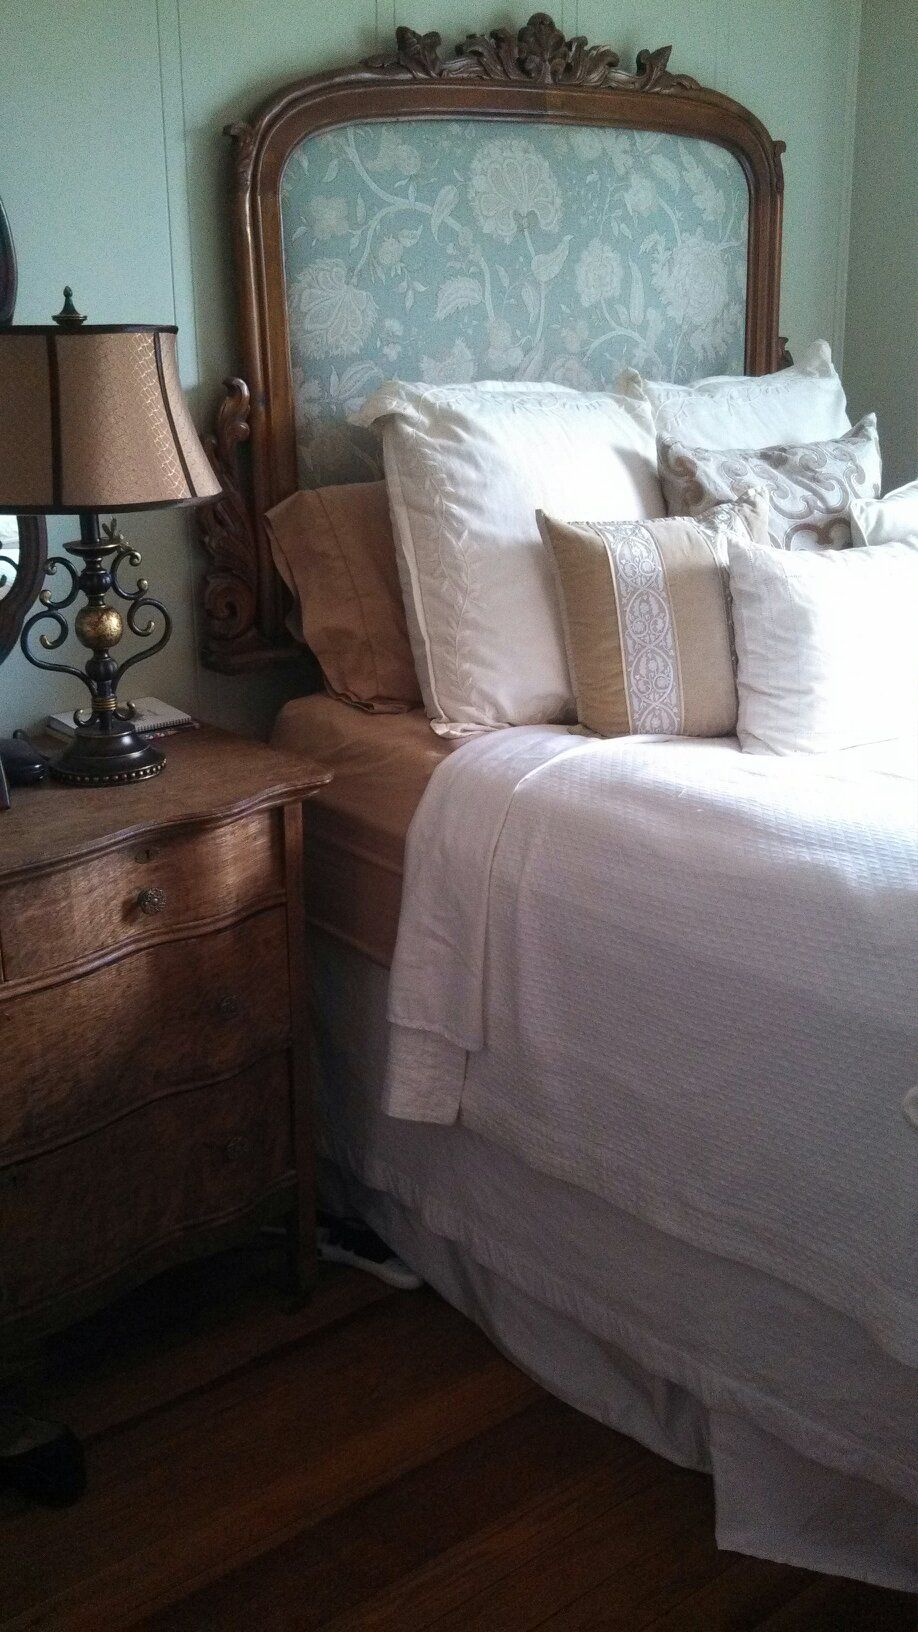 One of my diy projects the headboard is from an old sideboard or